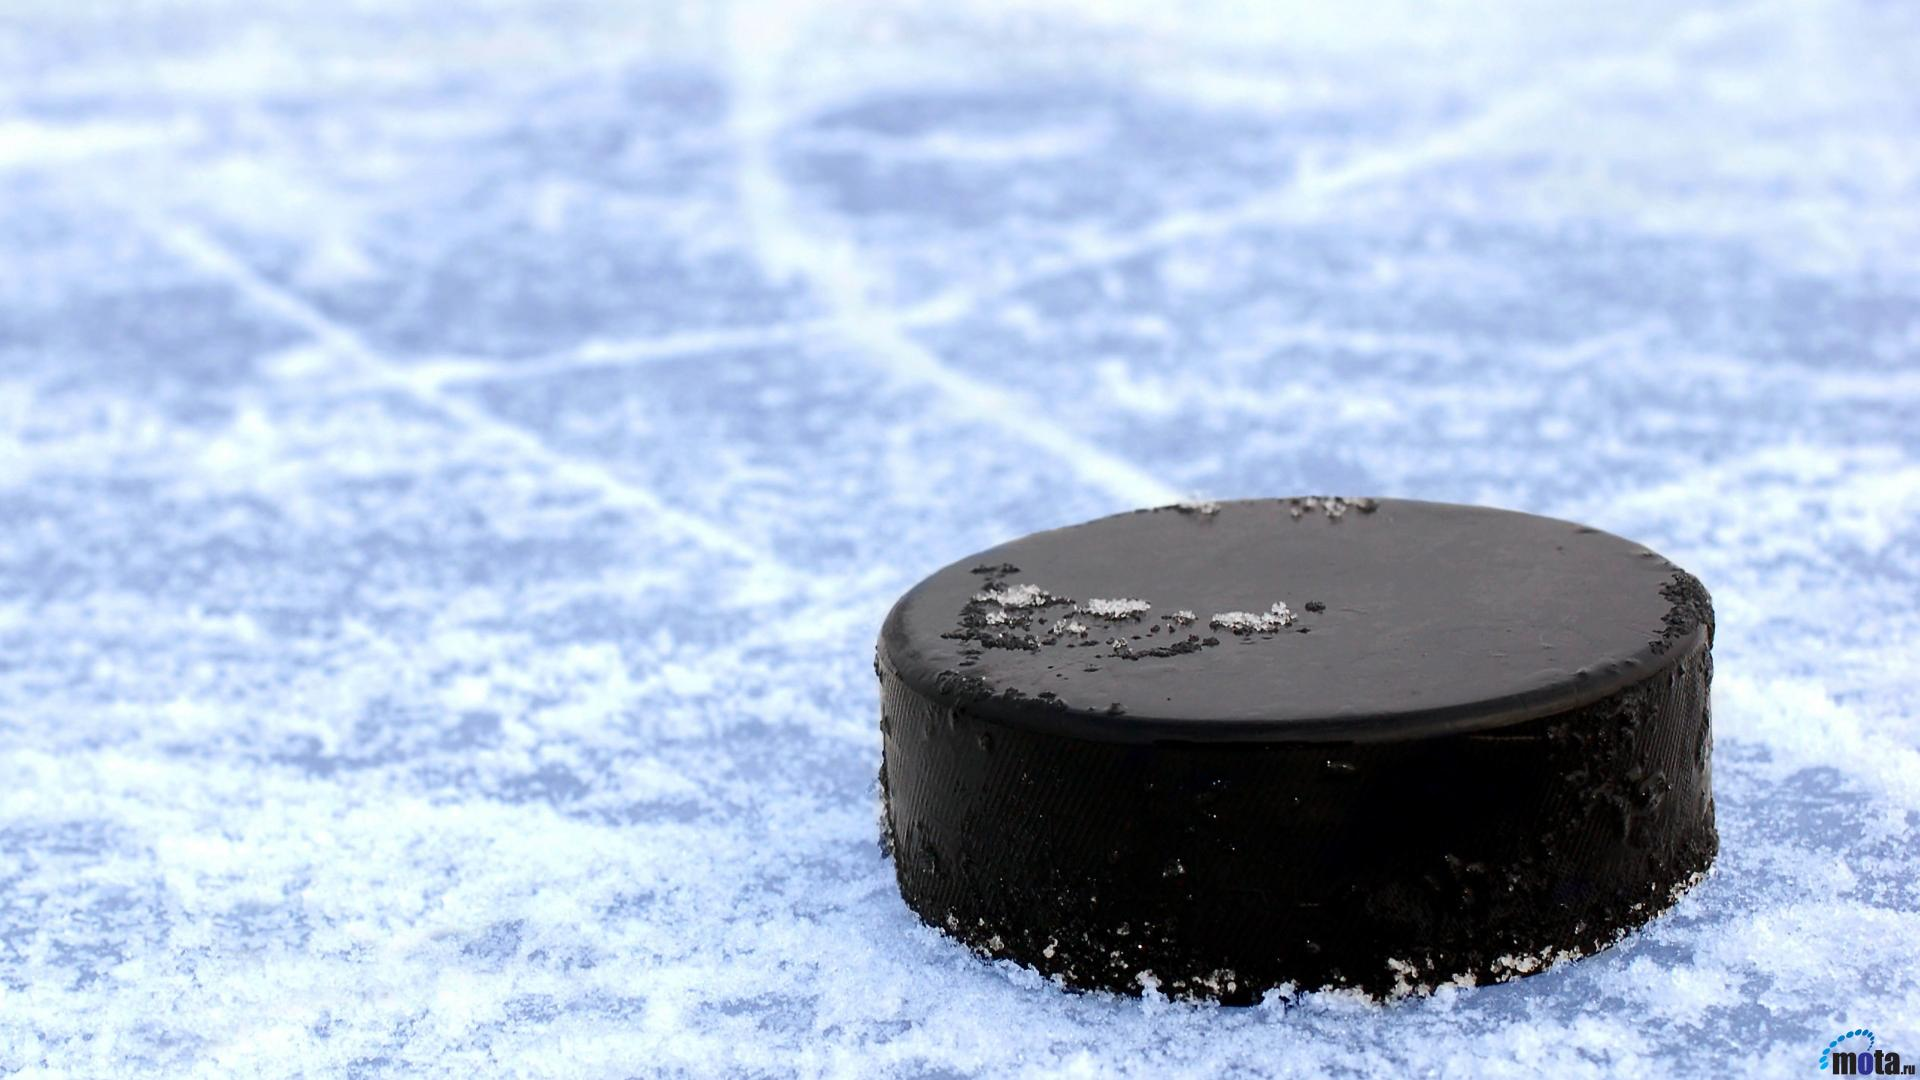 Wallpaper Hockey puck on ice 1920 x 1080 HDTV 1080p Desktop 1920x1080